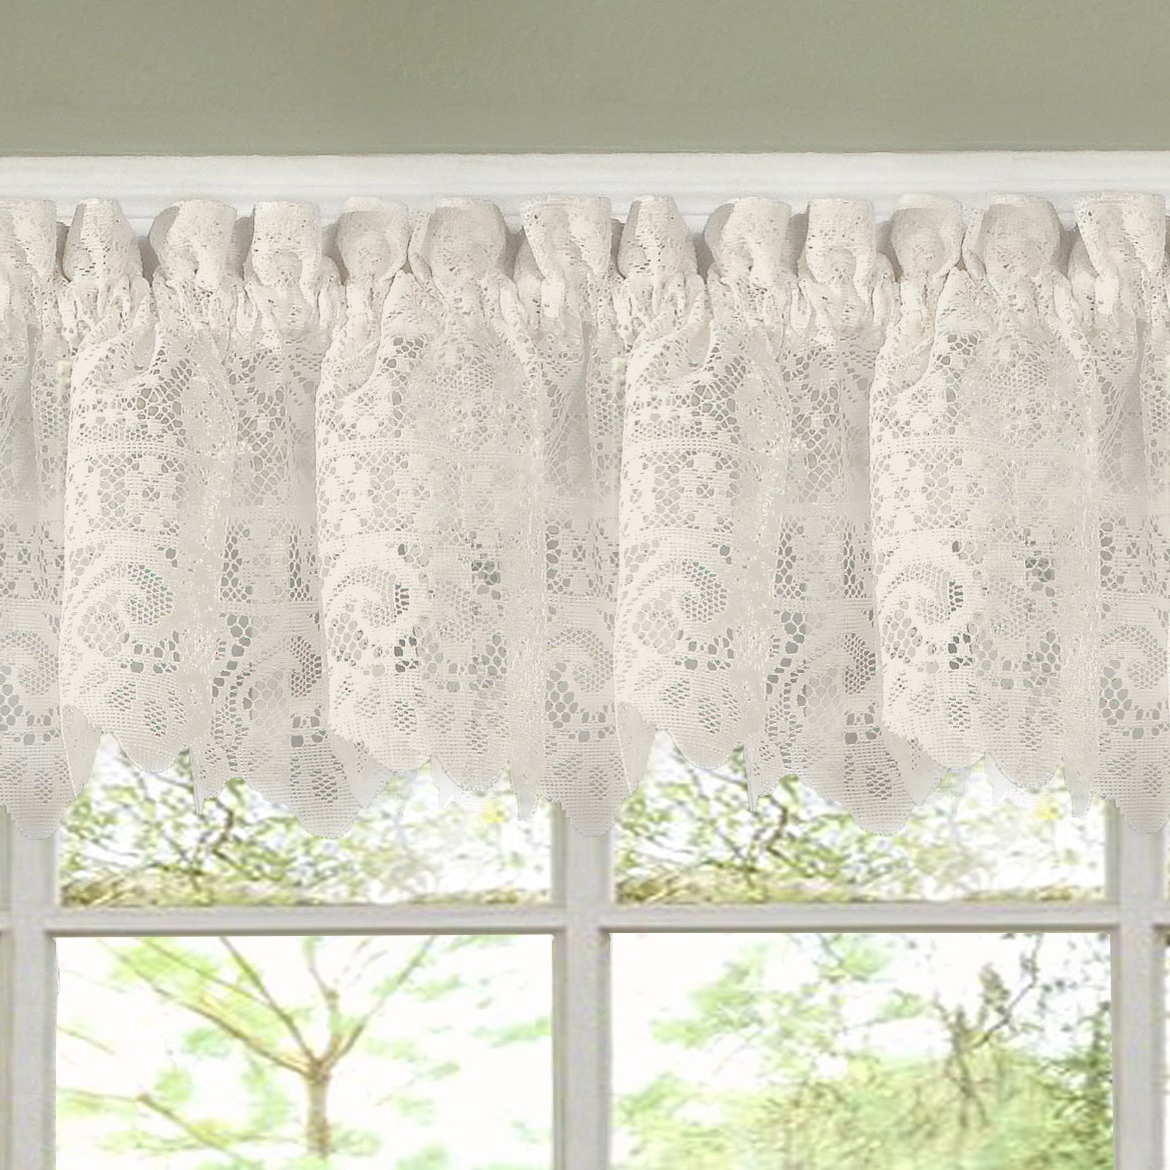 Luxurious Kitchen Curtains Tiers, Shade Or Valances Regarding Fashionable Luxurious Old World Style Lace Kitchen Curtains  Tiers And Valances In Cream (Gallery 2 of 20)